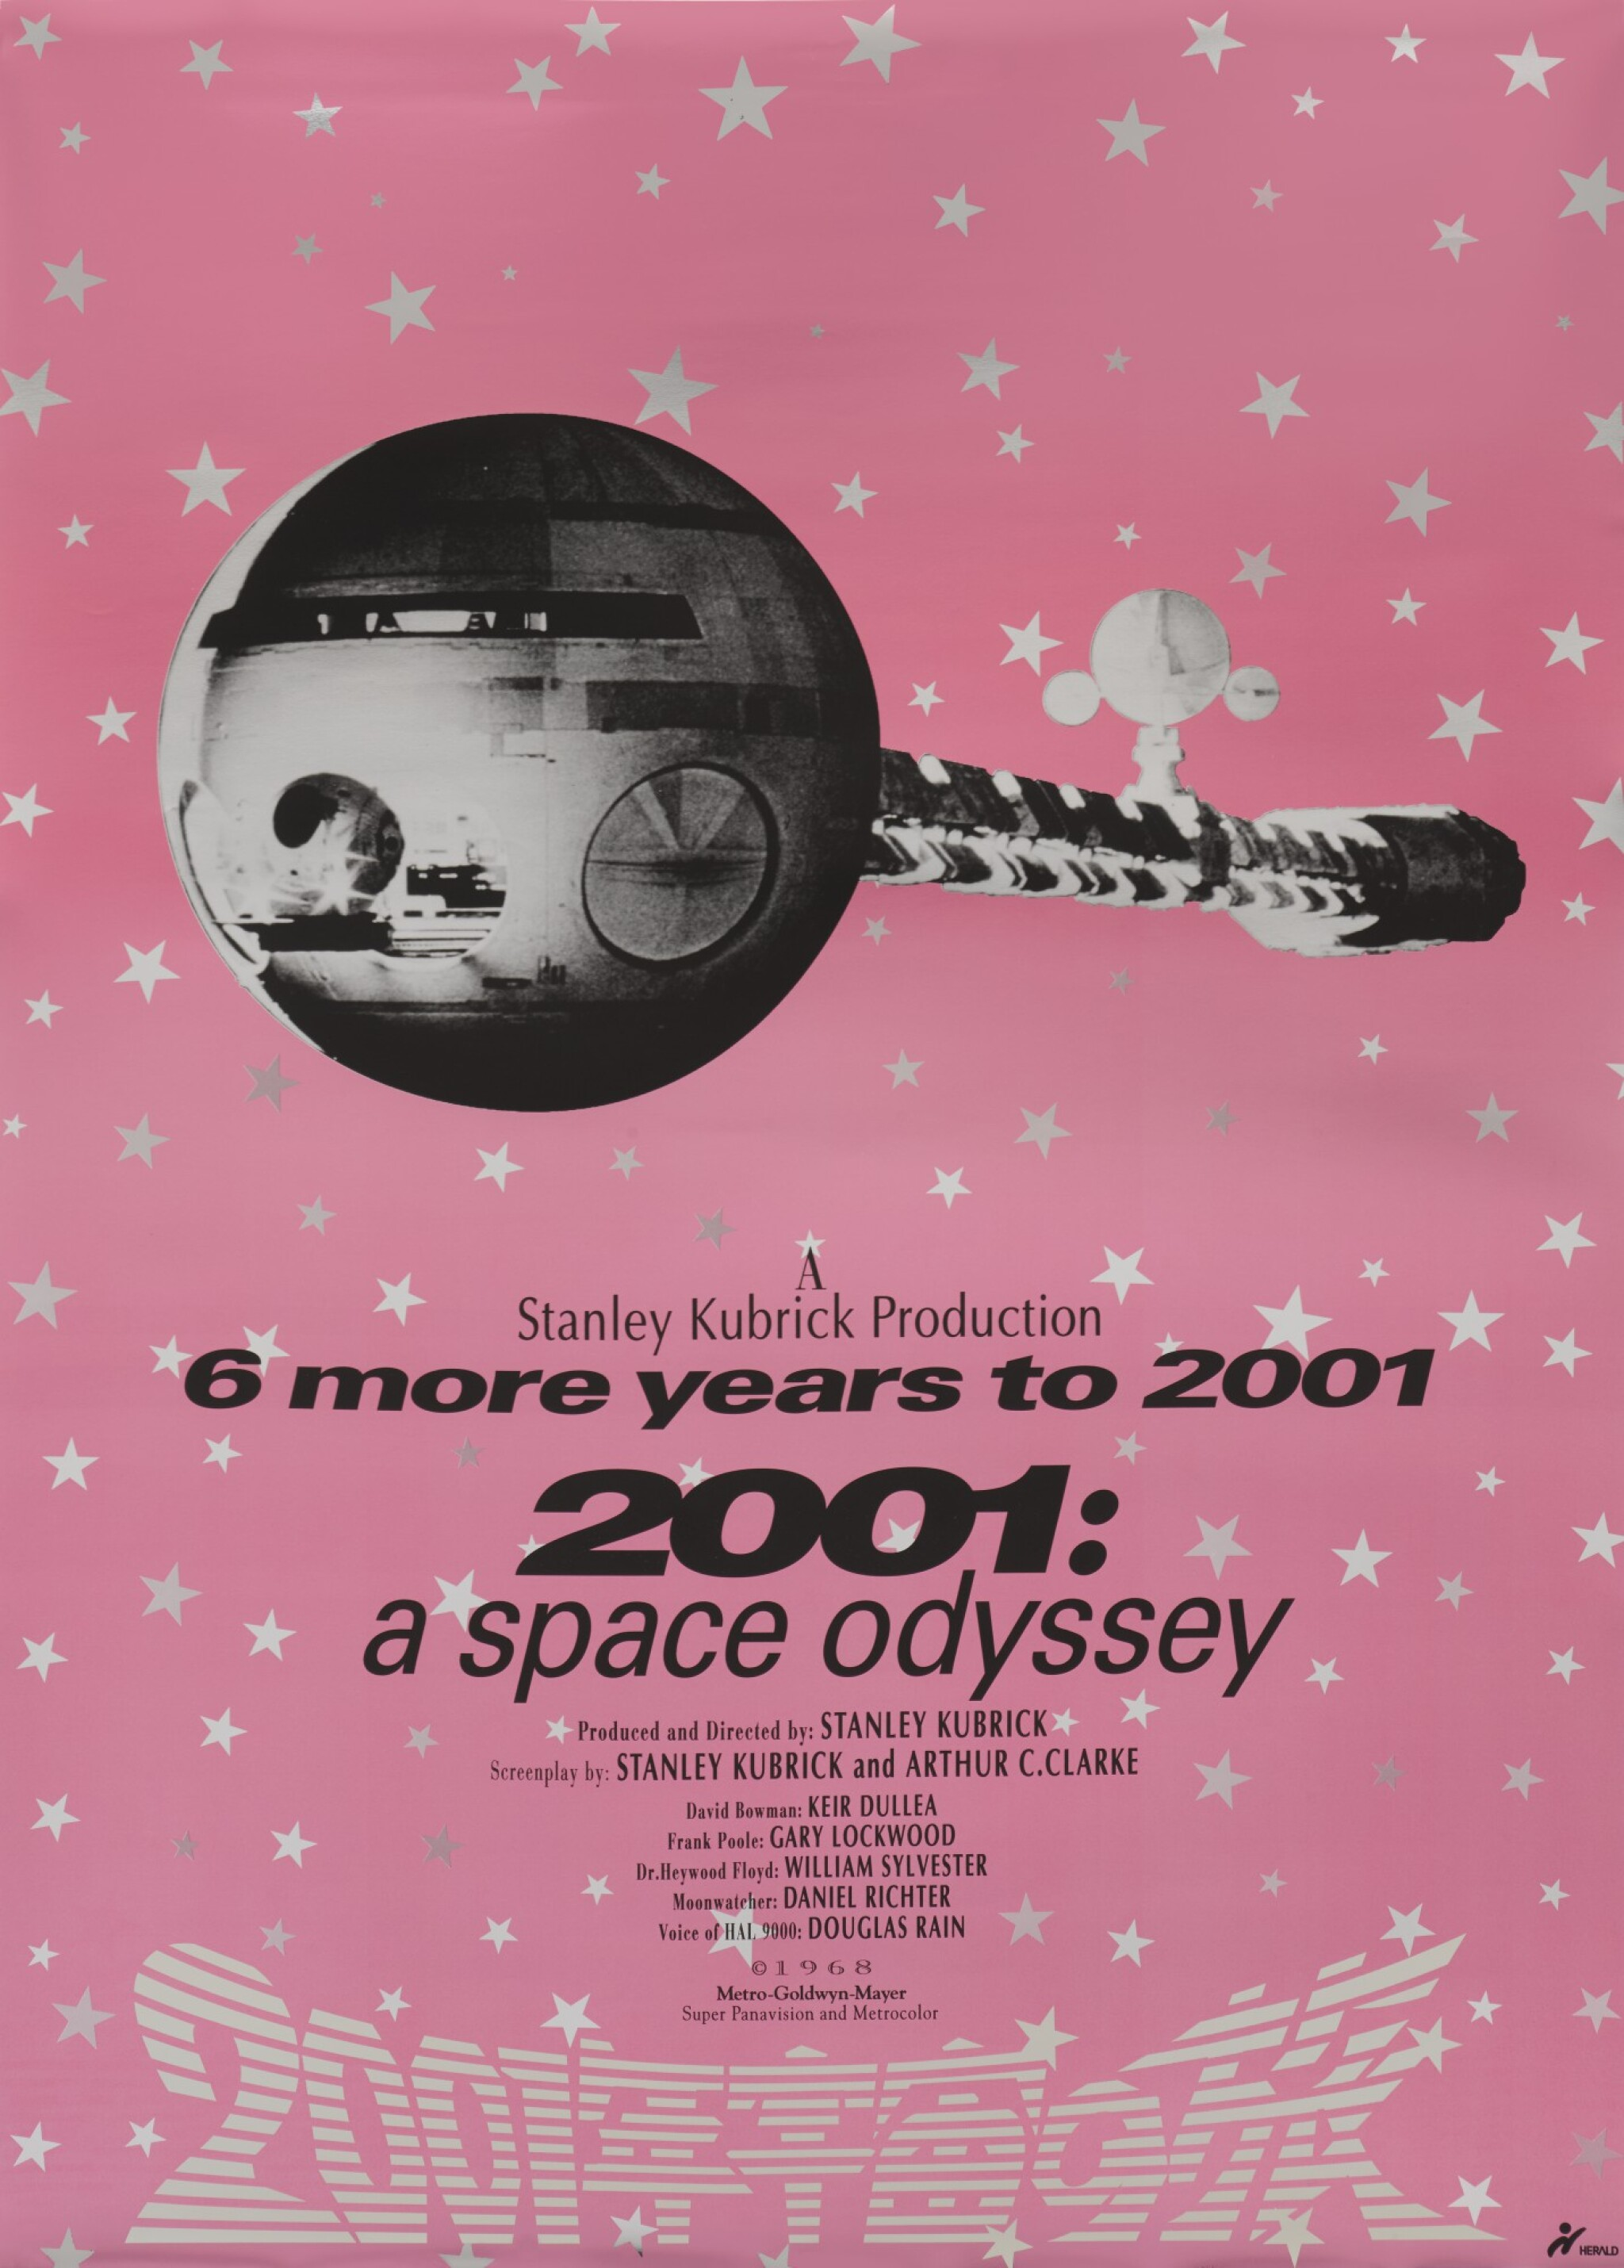 A Space Odyssey  japanese version Sci Fi Cinema Vintage Film Poster Reproduction High Quality Art Print CLASSIC MOVIE POSTER  2001